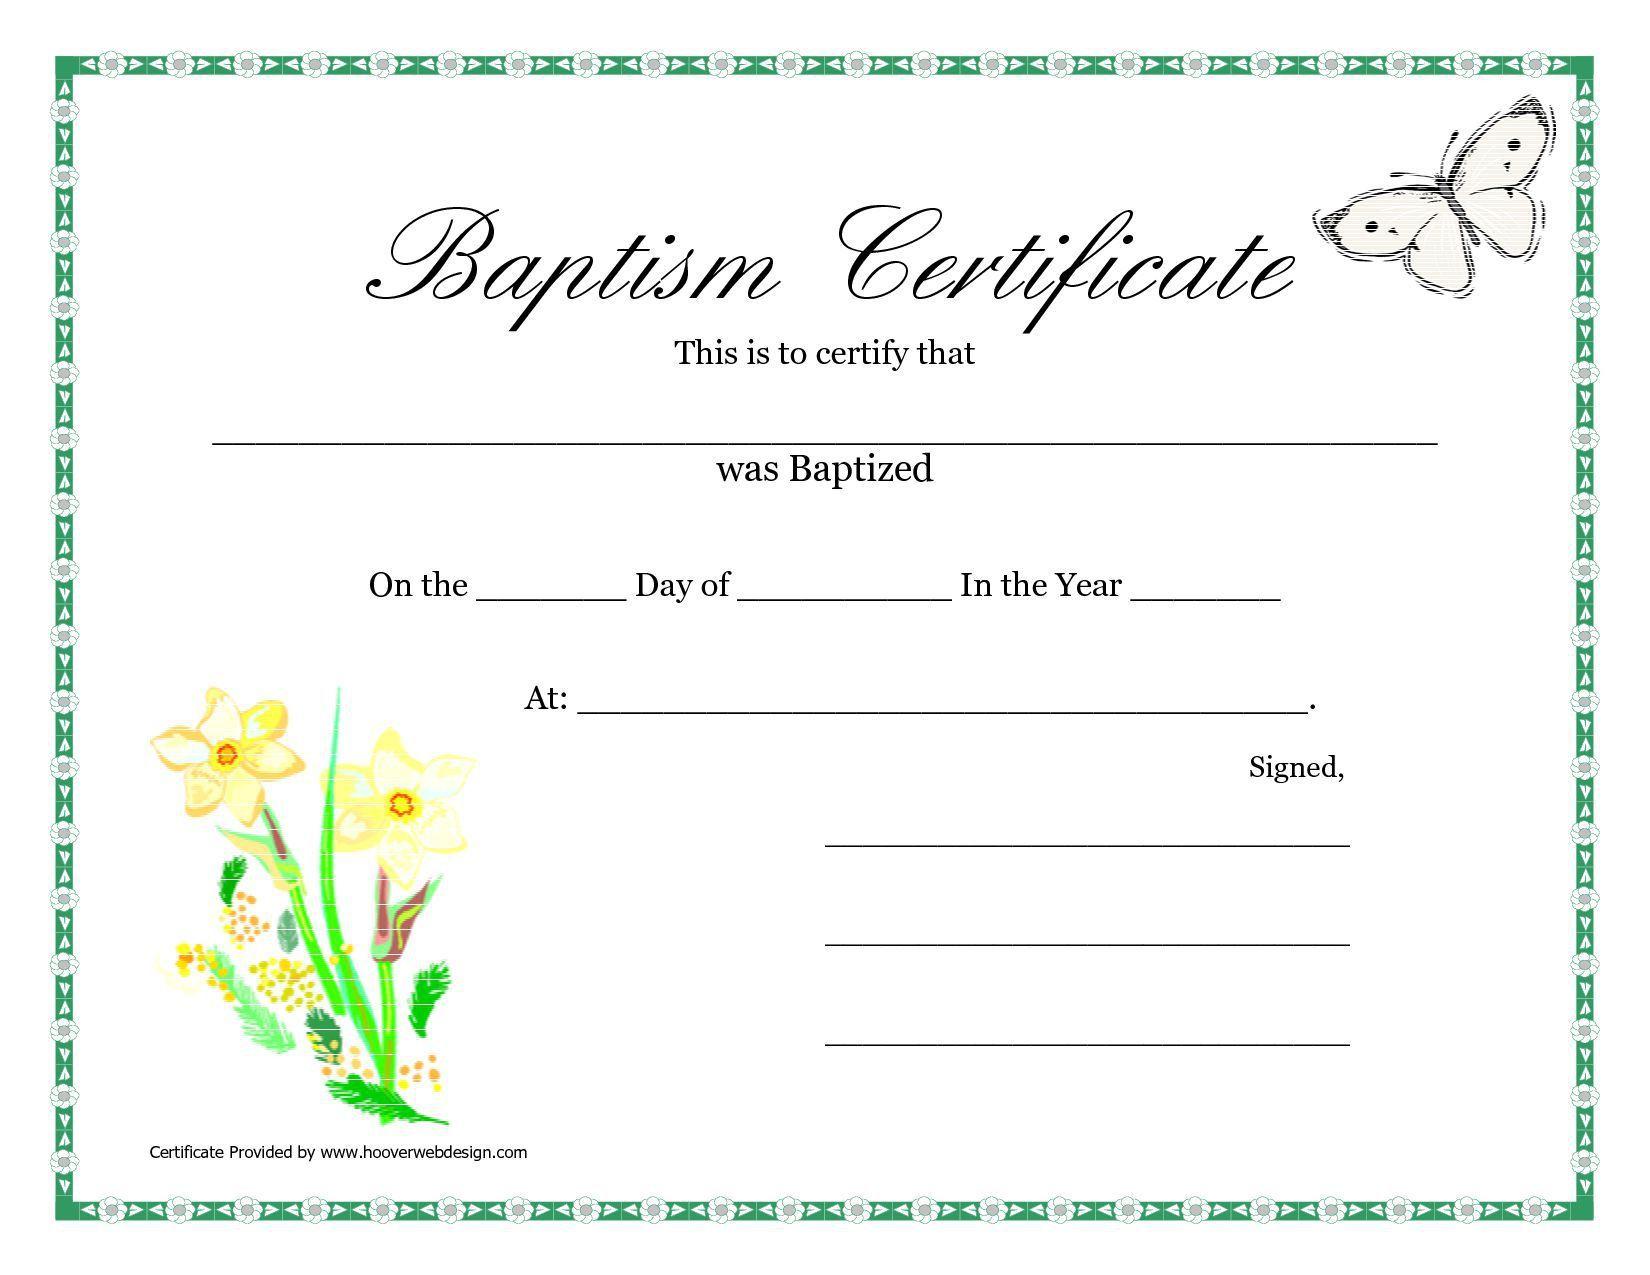 Baptism Invitation : Printable Baptism Invitations - Free Invitation - Free Online Printable Baptism Certificates